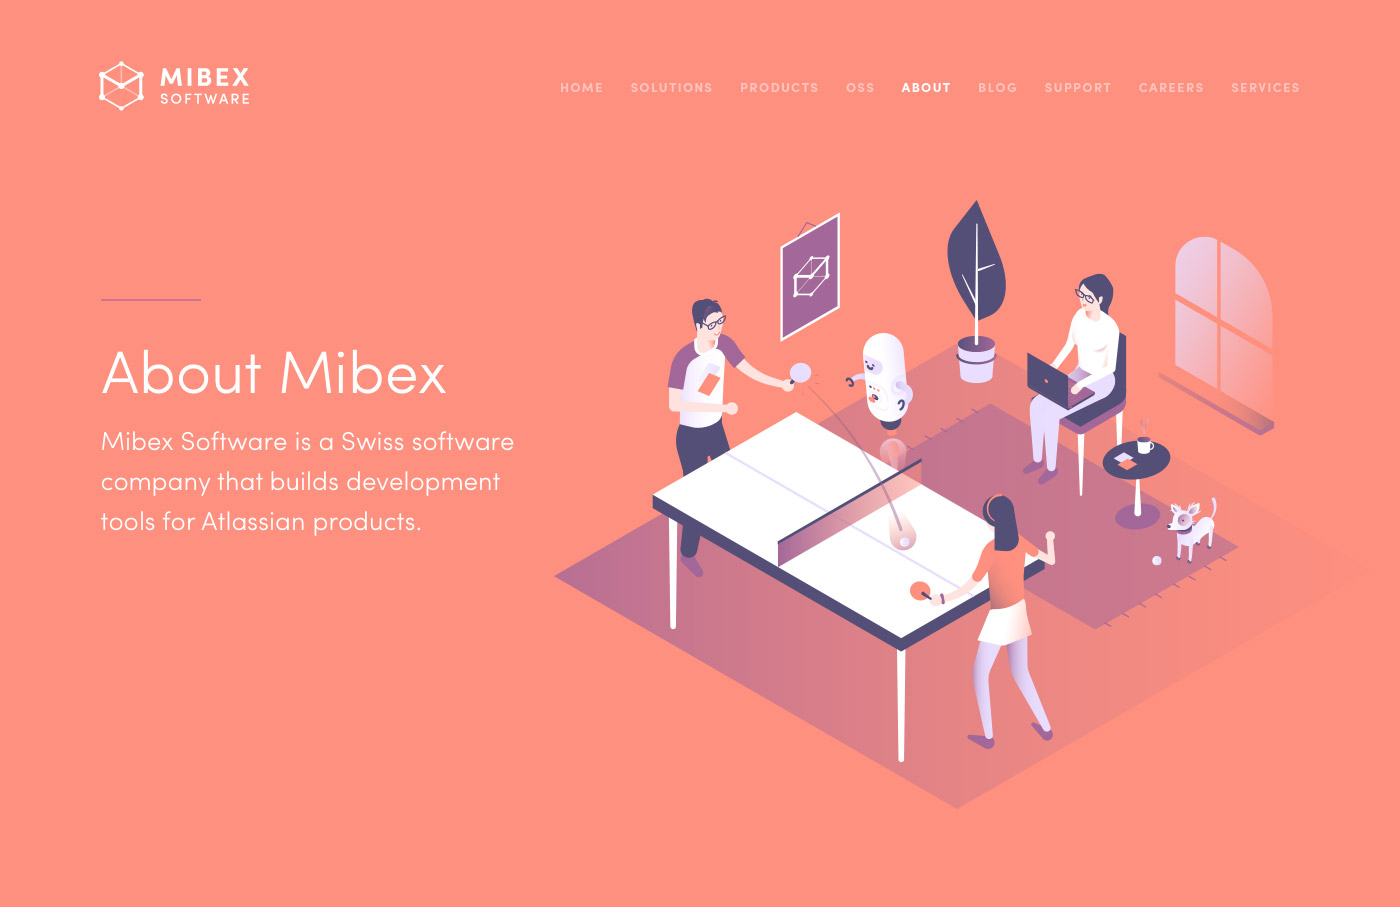 Mibex about